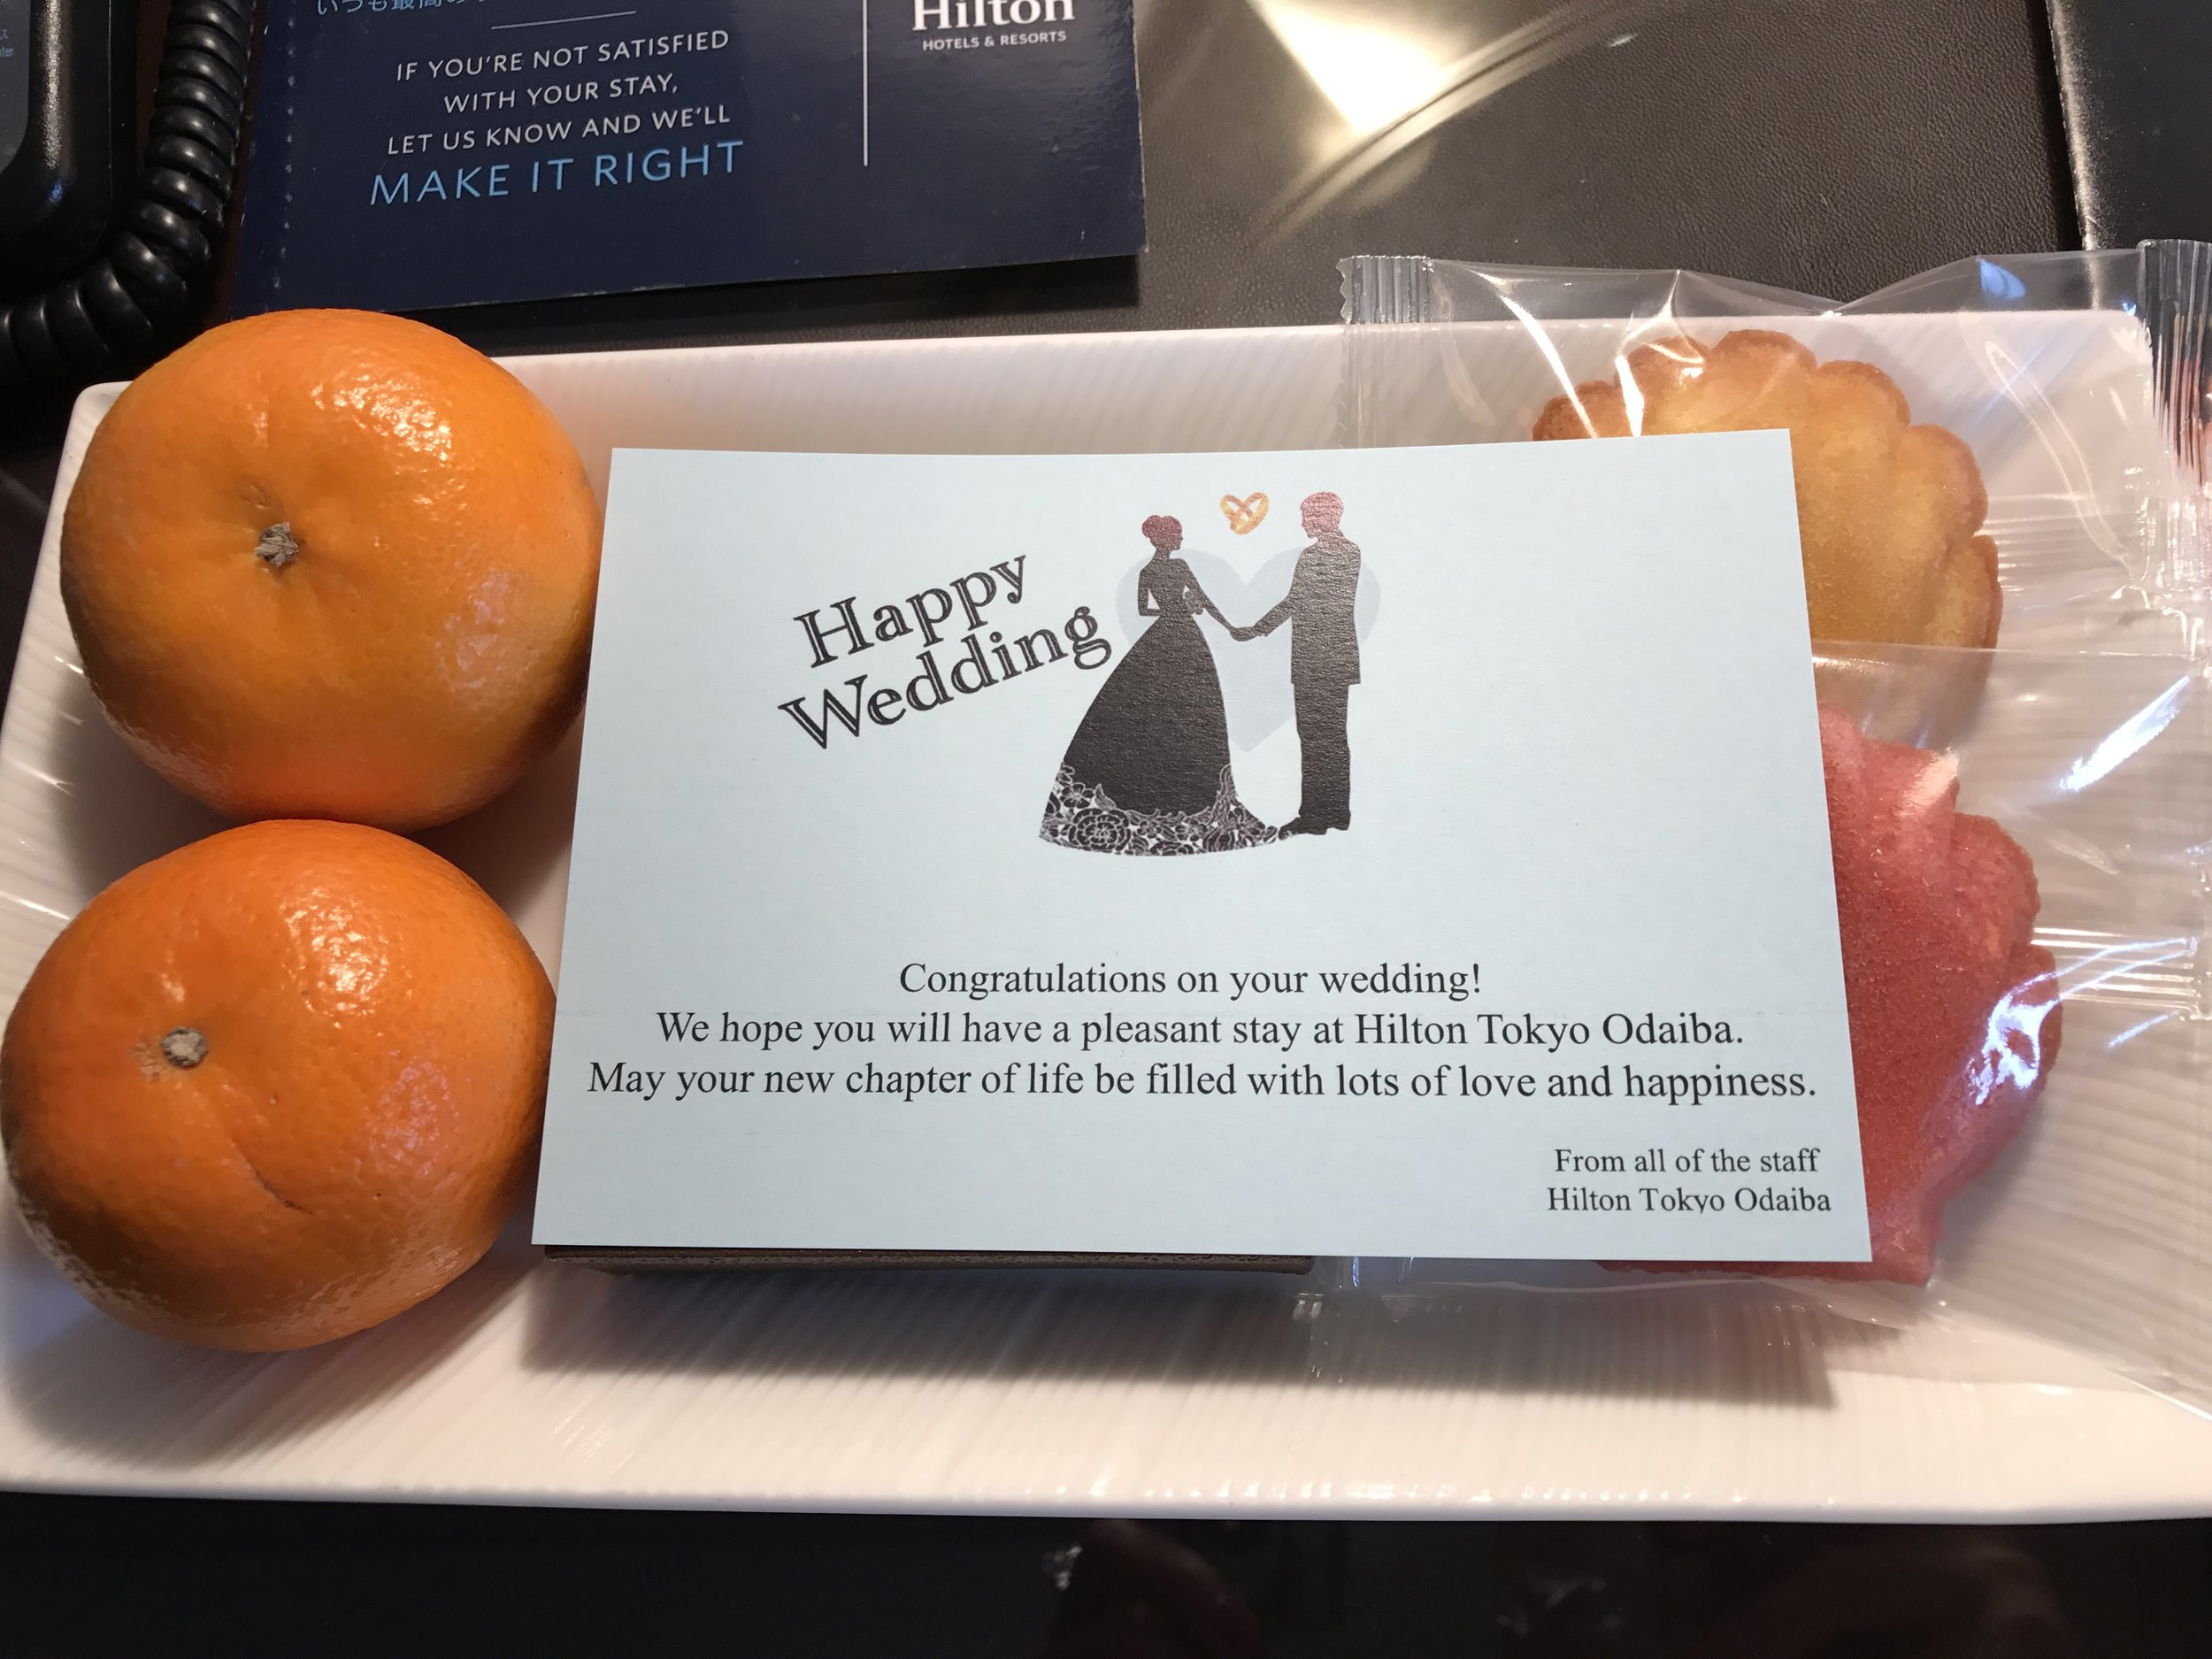 We were welcomed with a little gift since we were visiting for our honeymoon. Such a cute and kind gesture.